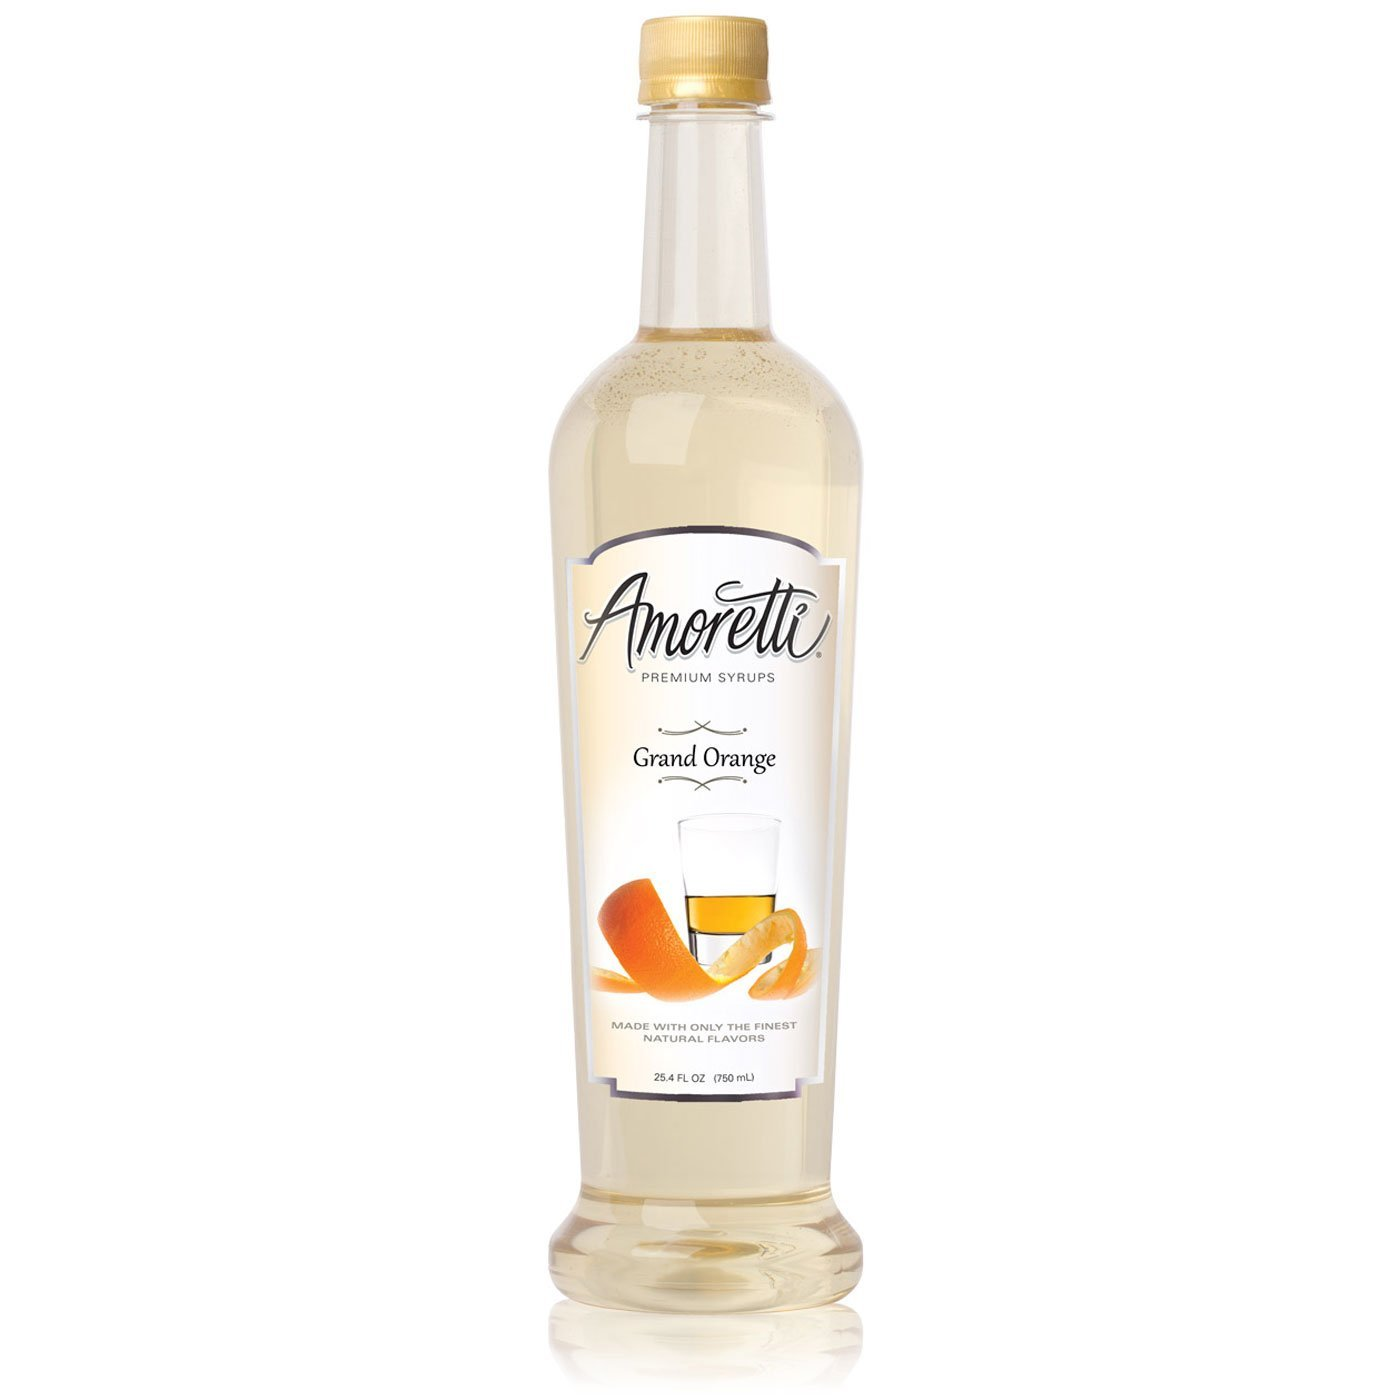 Amoretti Premium Syrup, Grand Orange, 25.4 Ounce